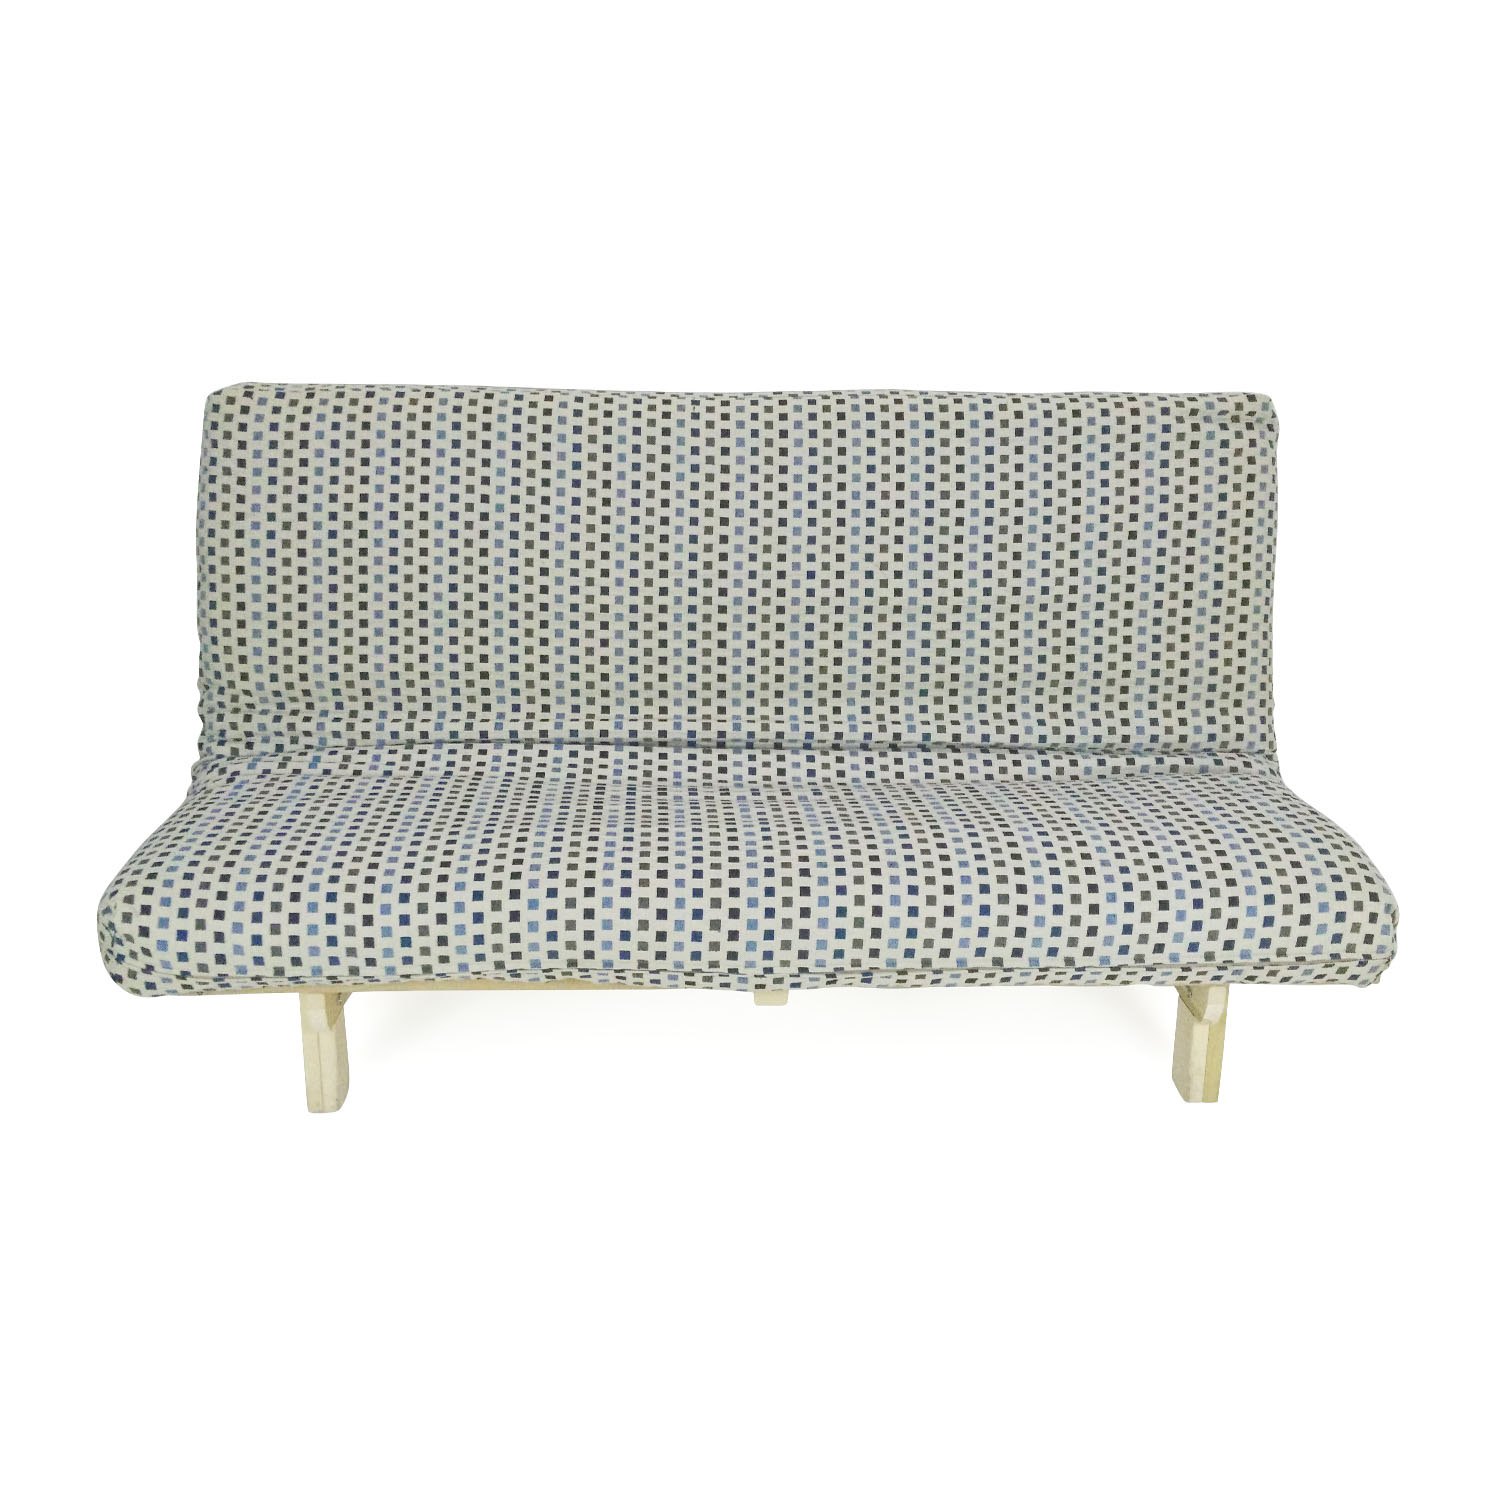 buy Comfy Futon Couch online